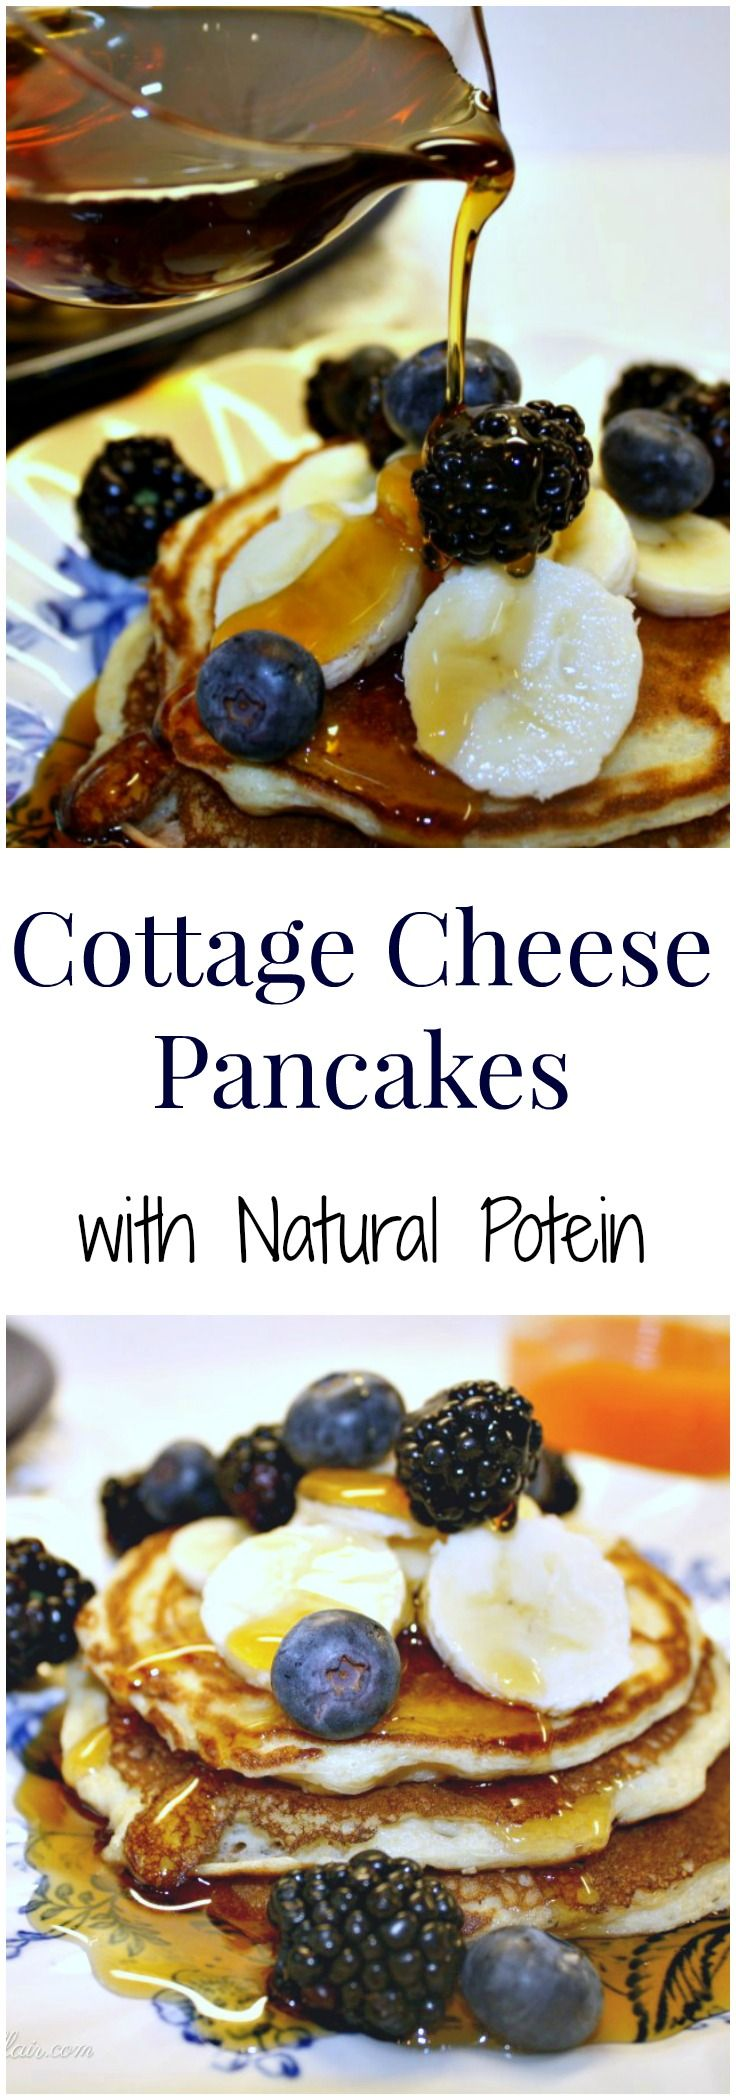 Cottage Cheese Pancakes | Recipe | Cottages, Cottage cheese and ...